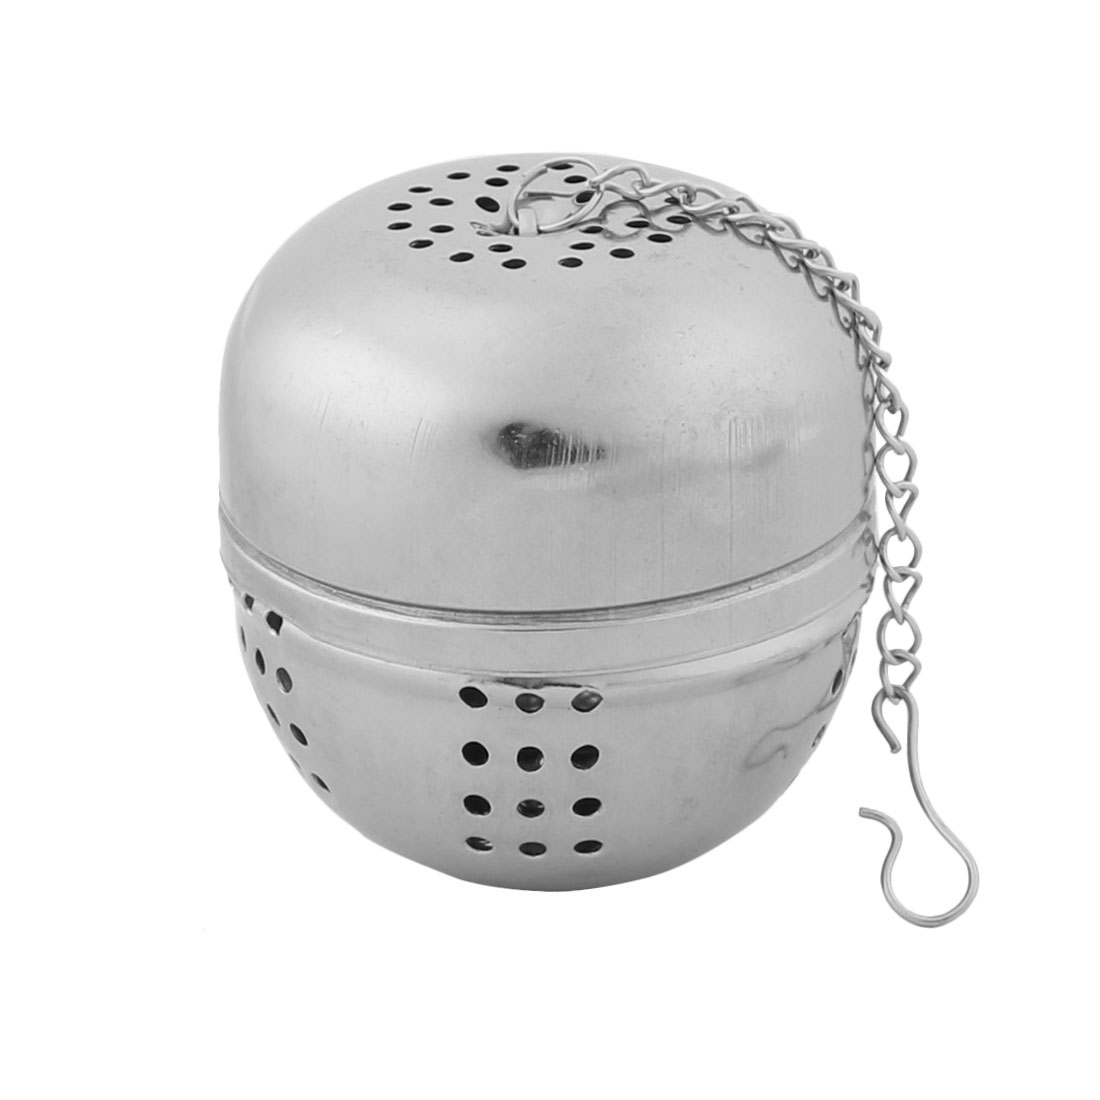 Household Kitchen Stainless Steel Tea Ball Strainer Infuser Silver Tone